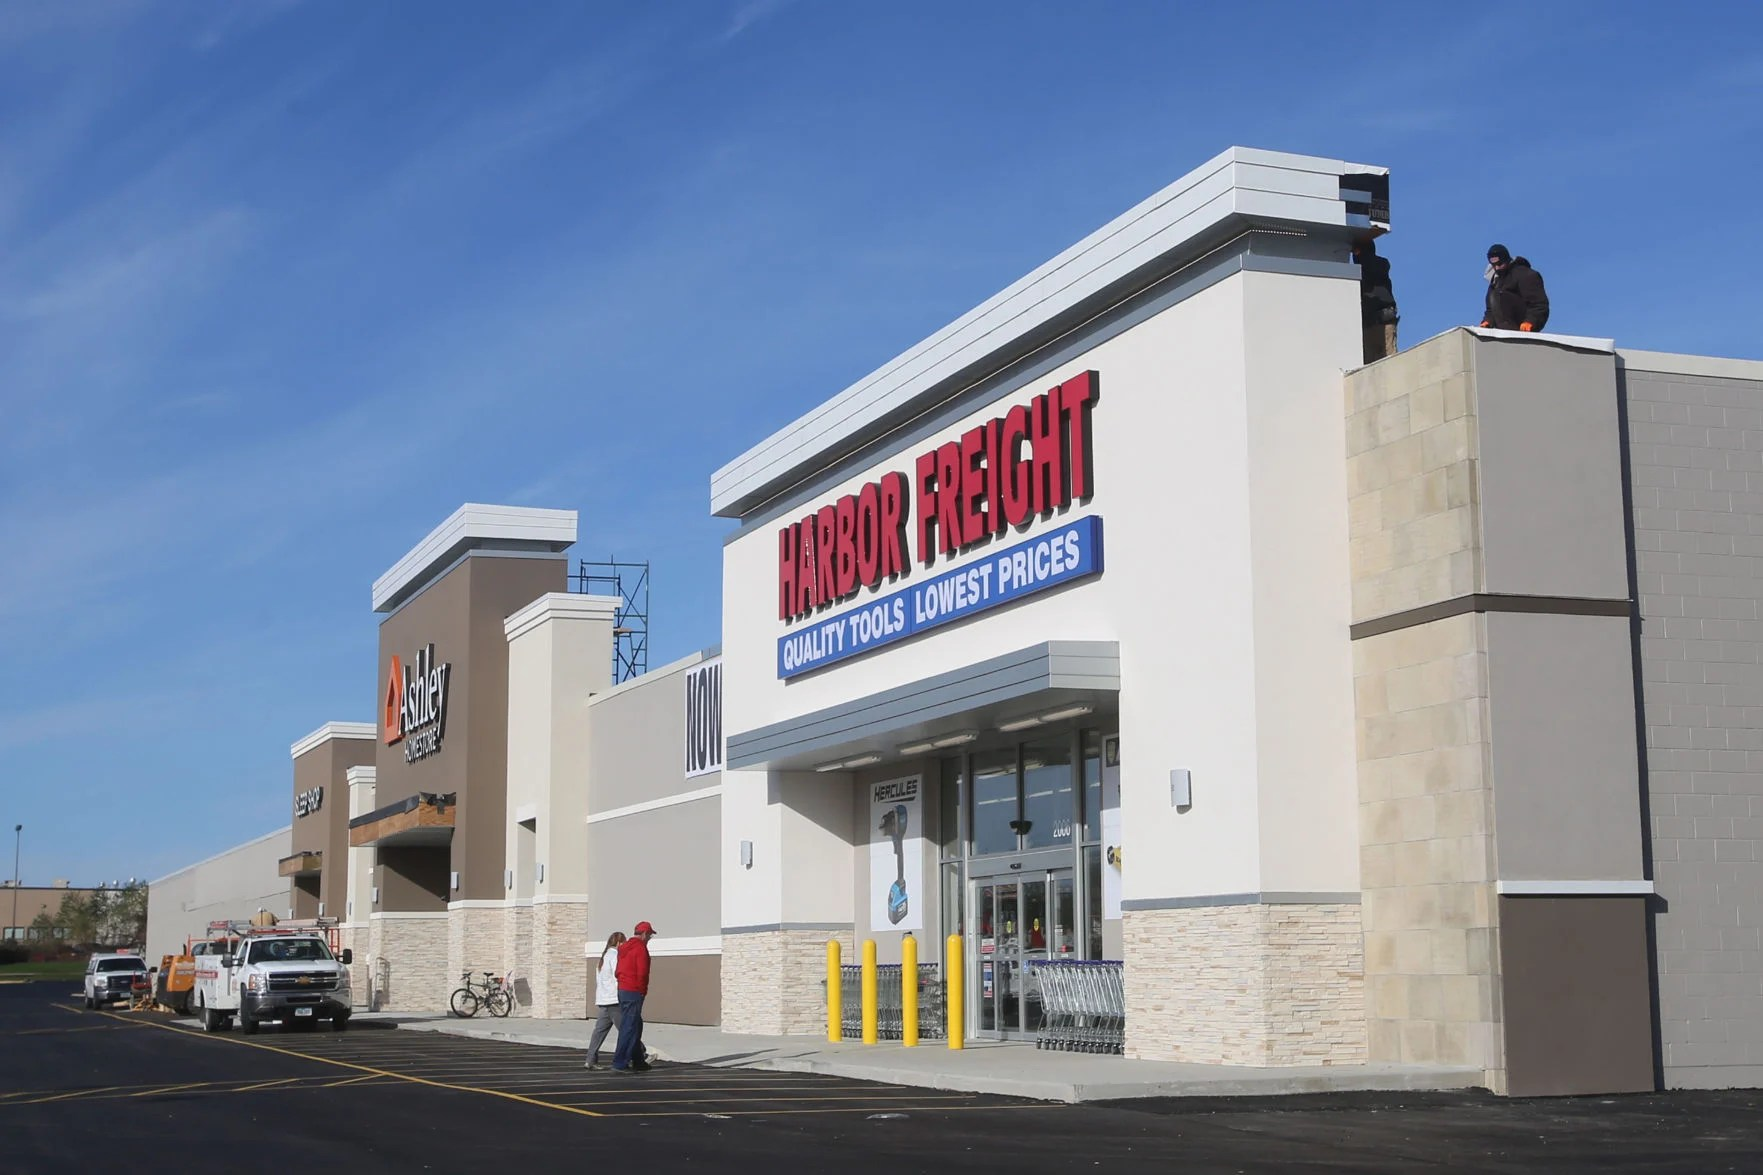 Garage Flooring Harbor Freight Harbor Freight Now Open In Mason City Ashley Furniture To Open